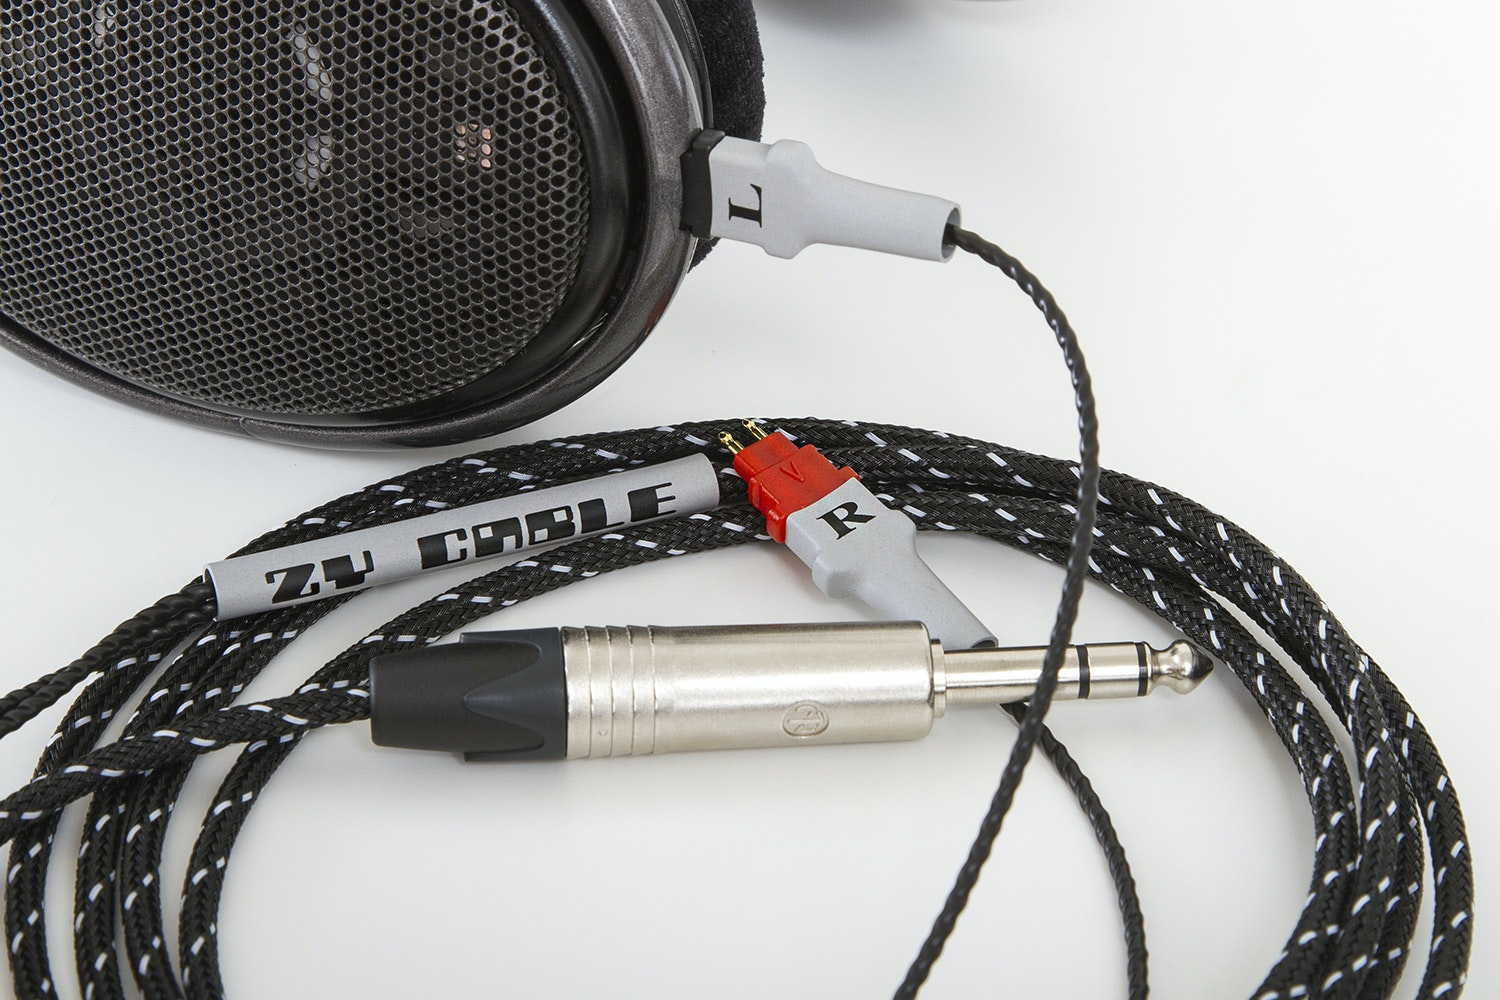 ZY Cable Sennheiser Replacement Cable